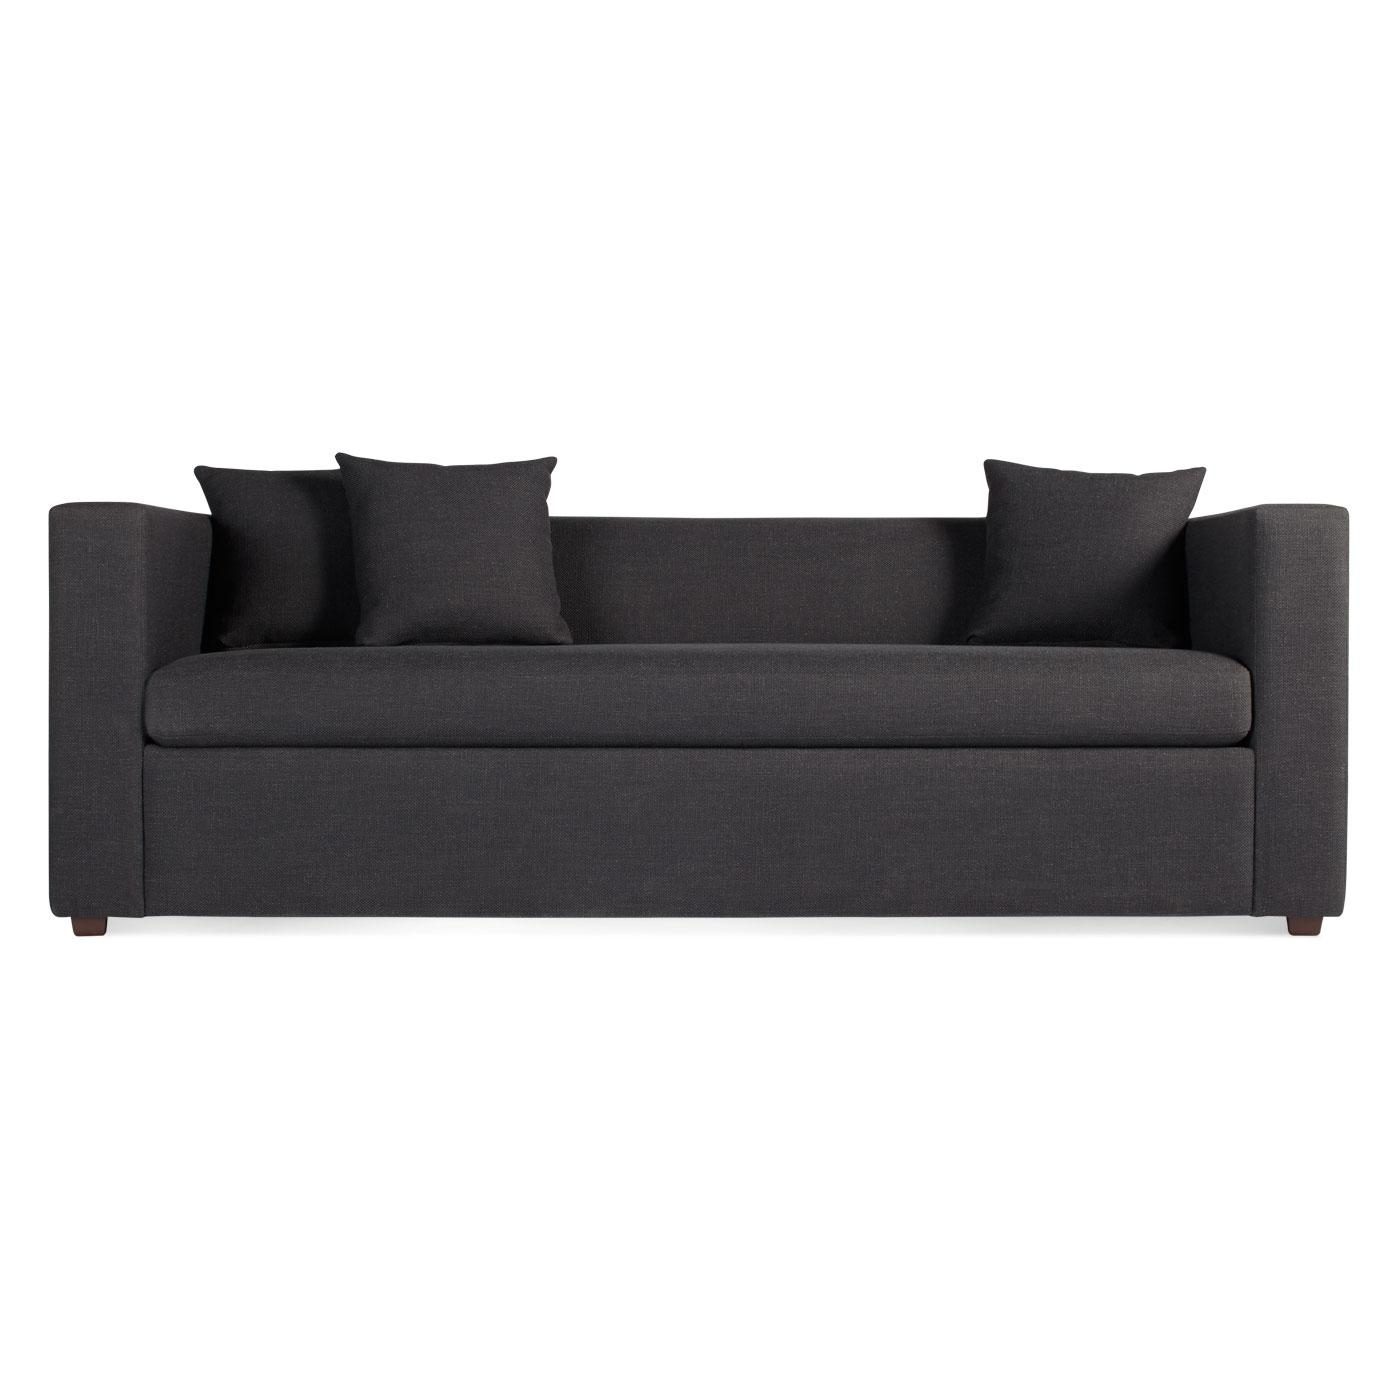 Mono Modern Sleeper Sofa – Single Cushion Sofa | Blu Dot Regarding One Cushion Sofas (Image 6 of 20)